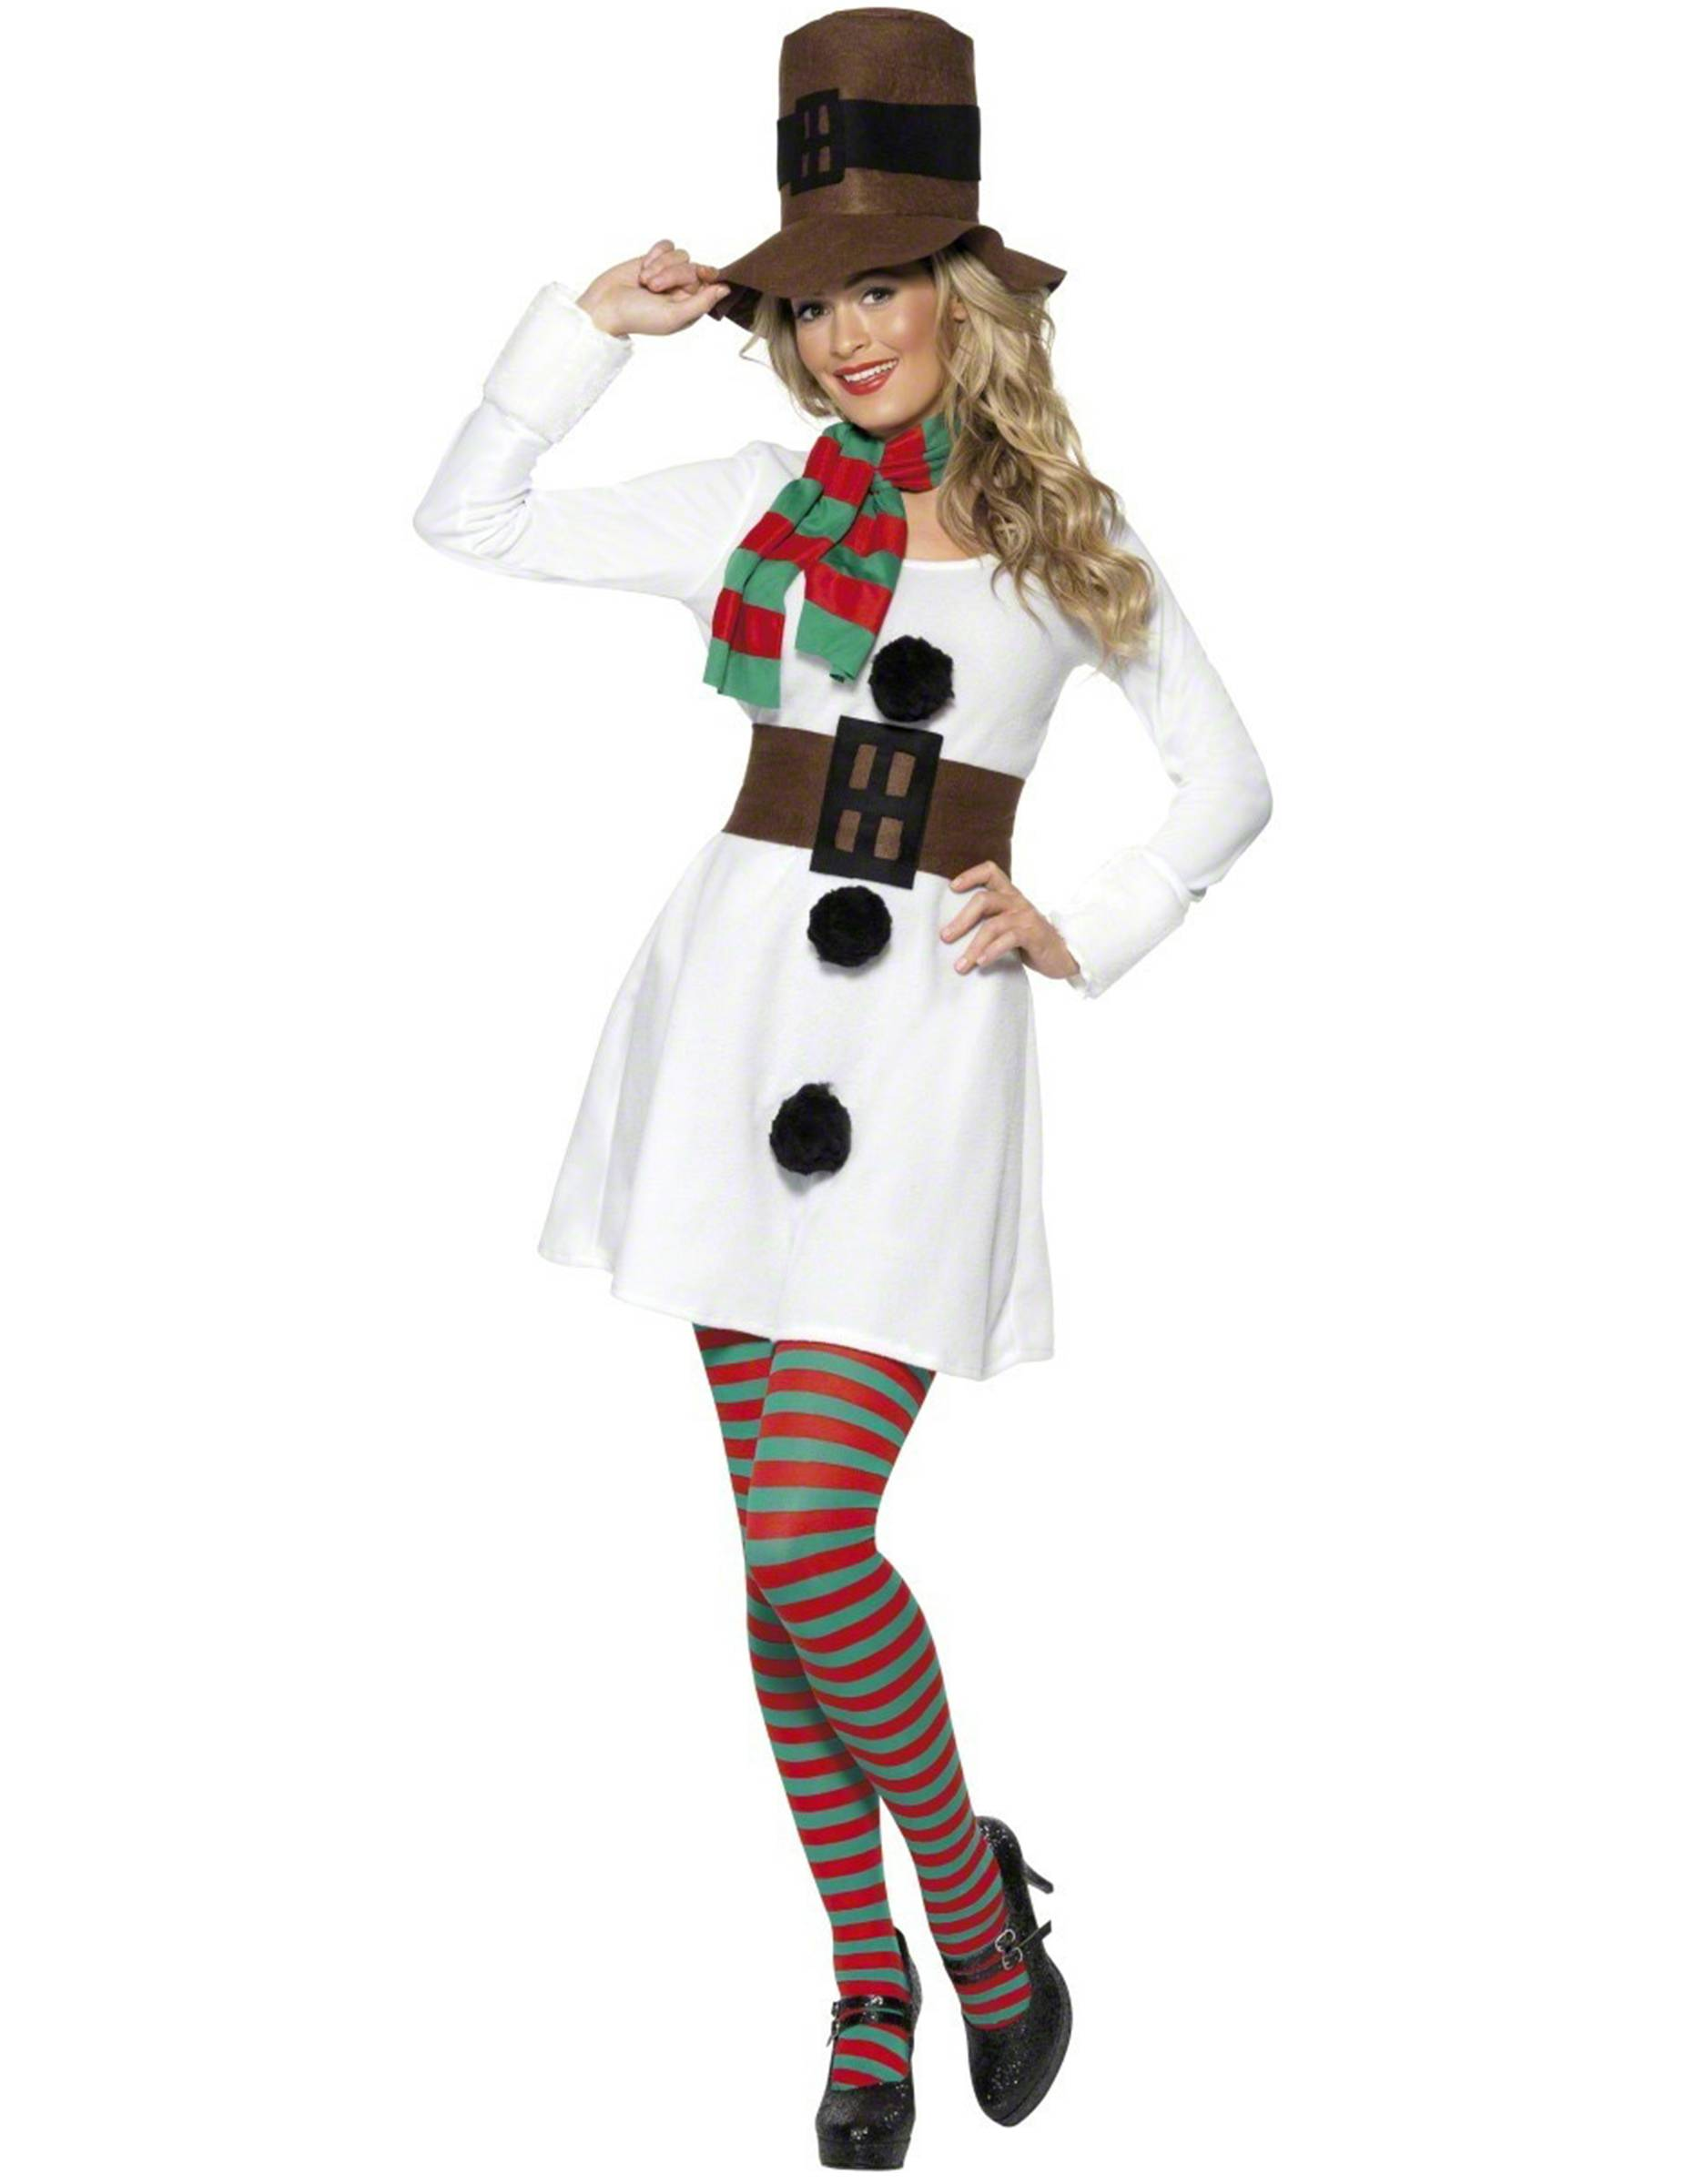 VegaooParty.it Costume pupazzo neve donna natale - S